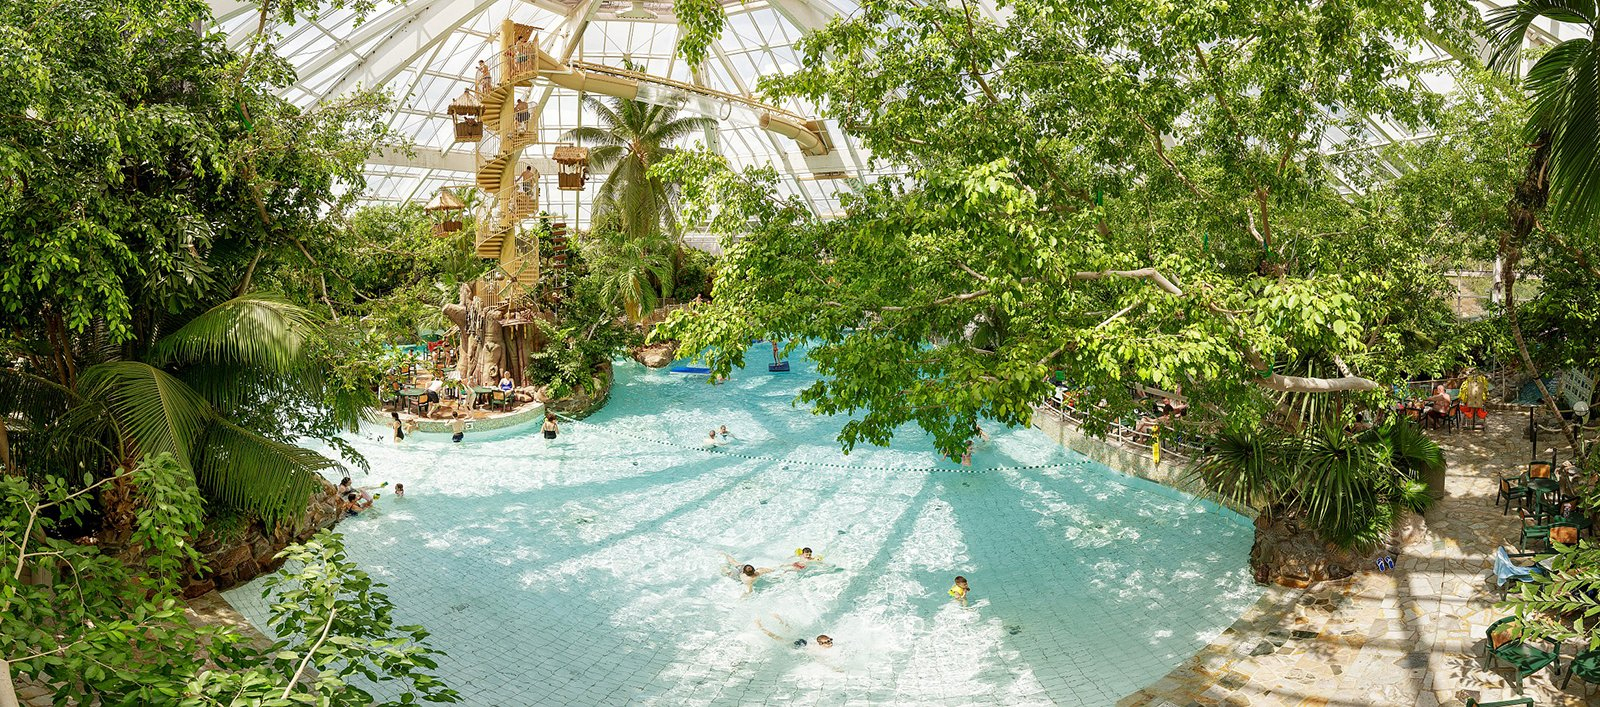 Aqua Mundo | Center Parcs dedans Piscine Center Parc